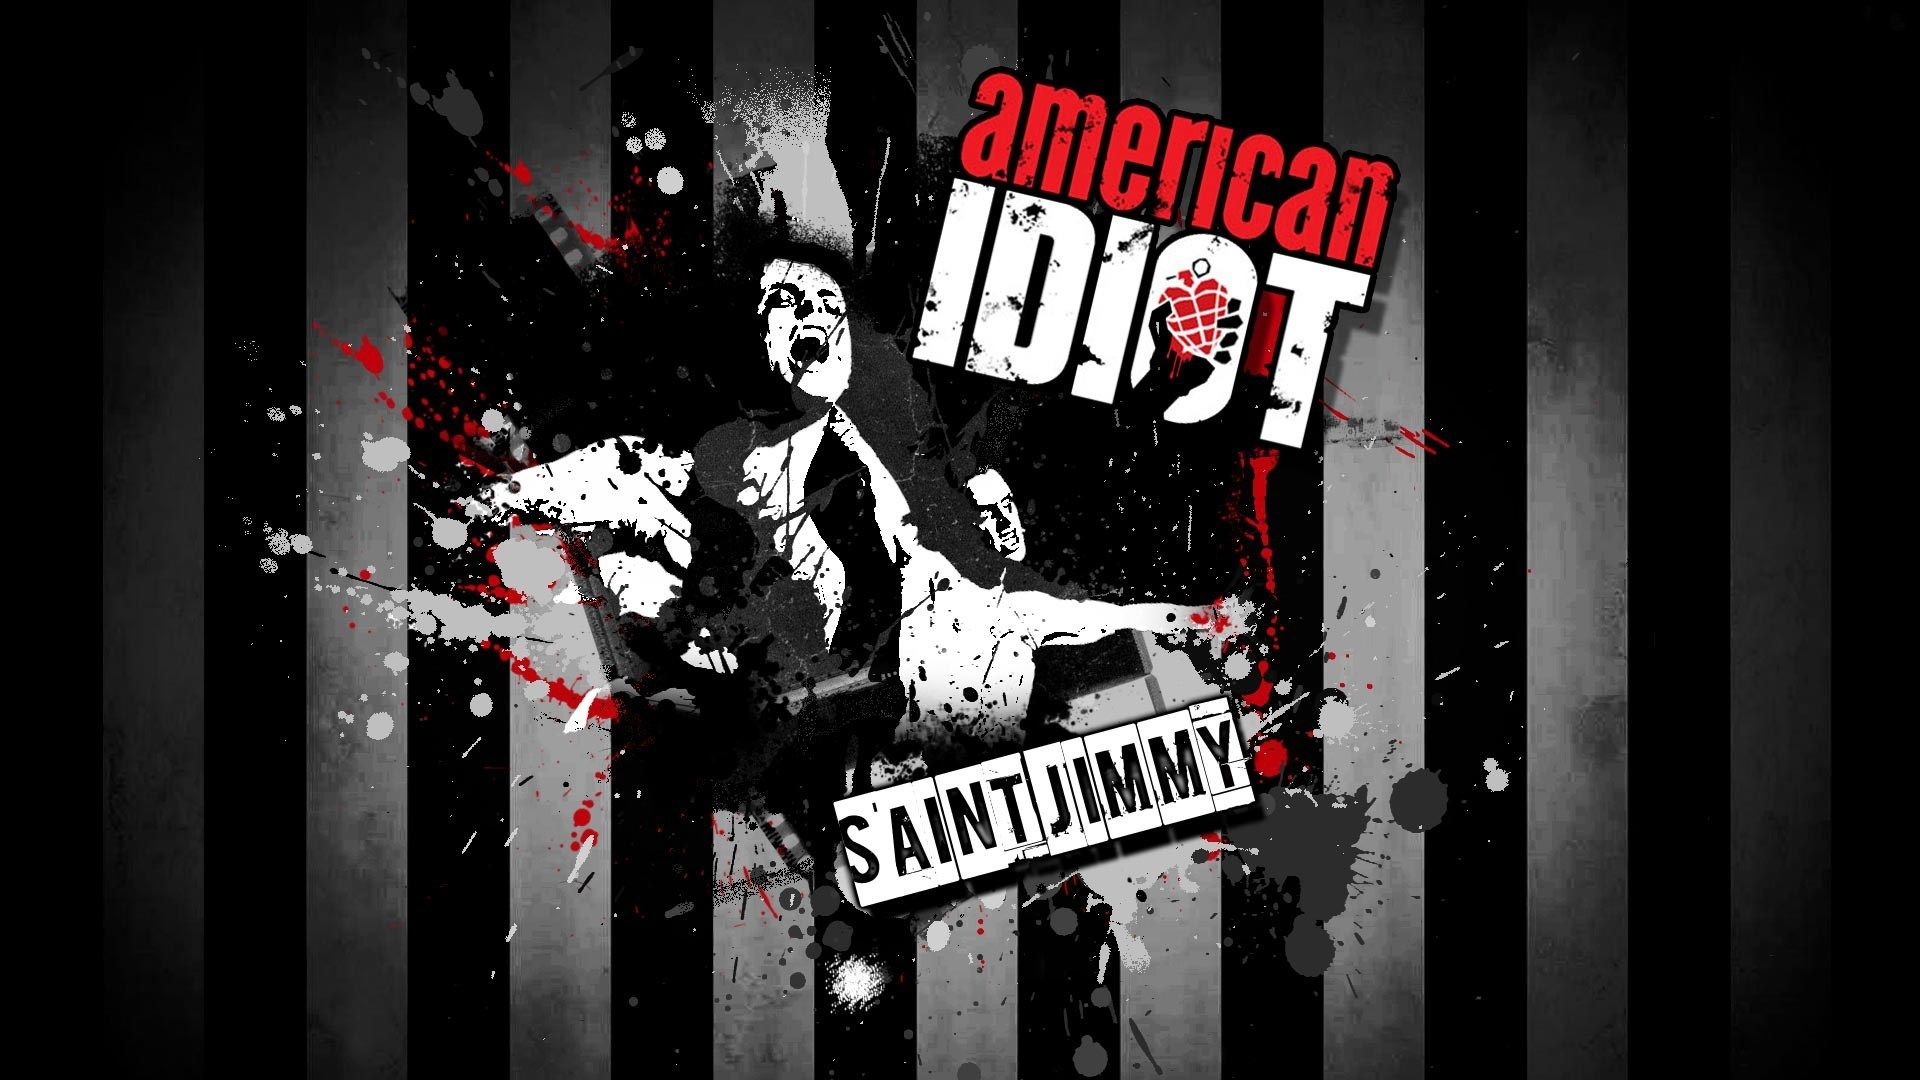 Amazing Wallpaper Logo Green Day - c14525eef5a7fe9175837f2425bf7609  You Should Have_737044.jpg